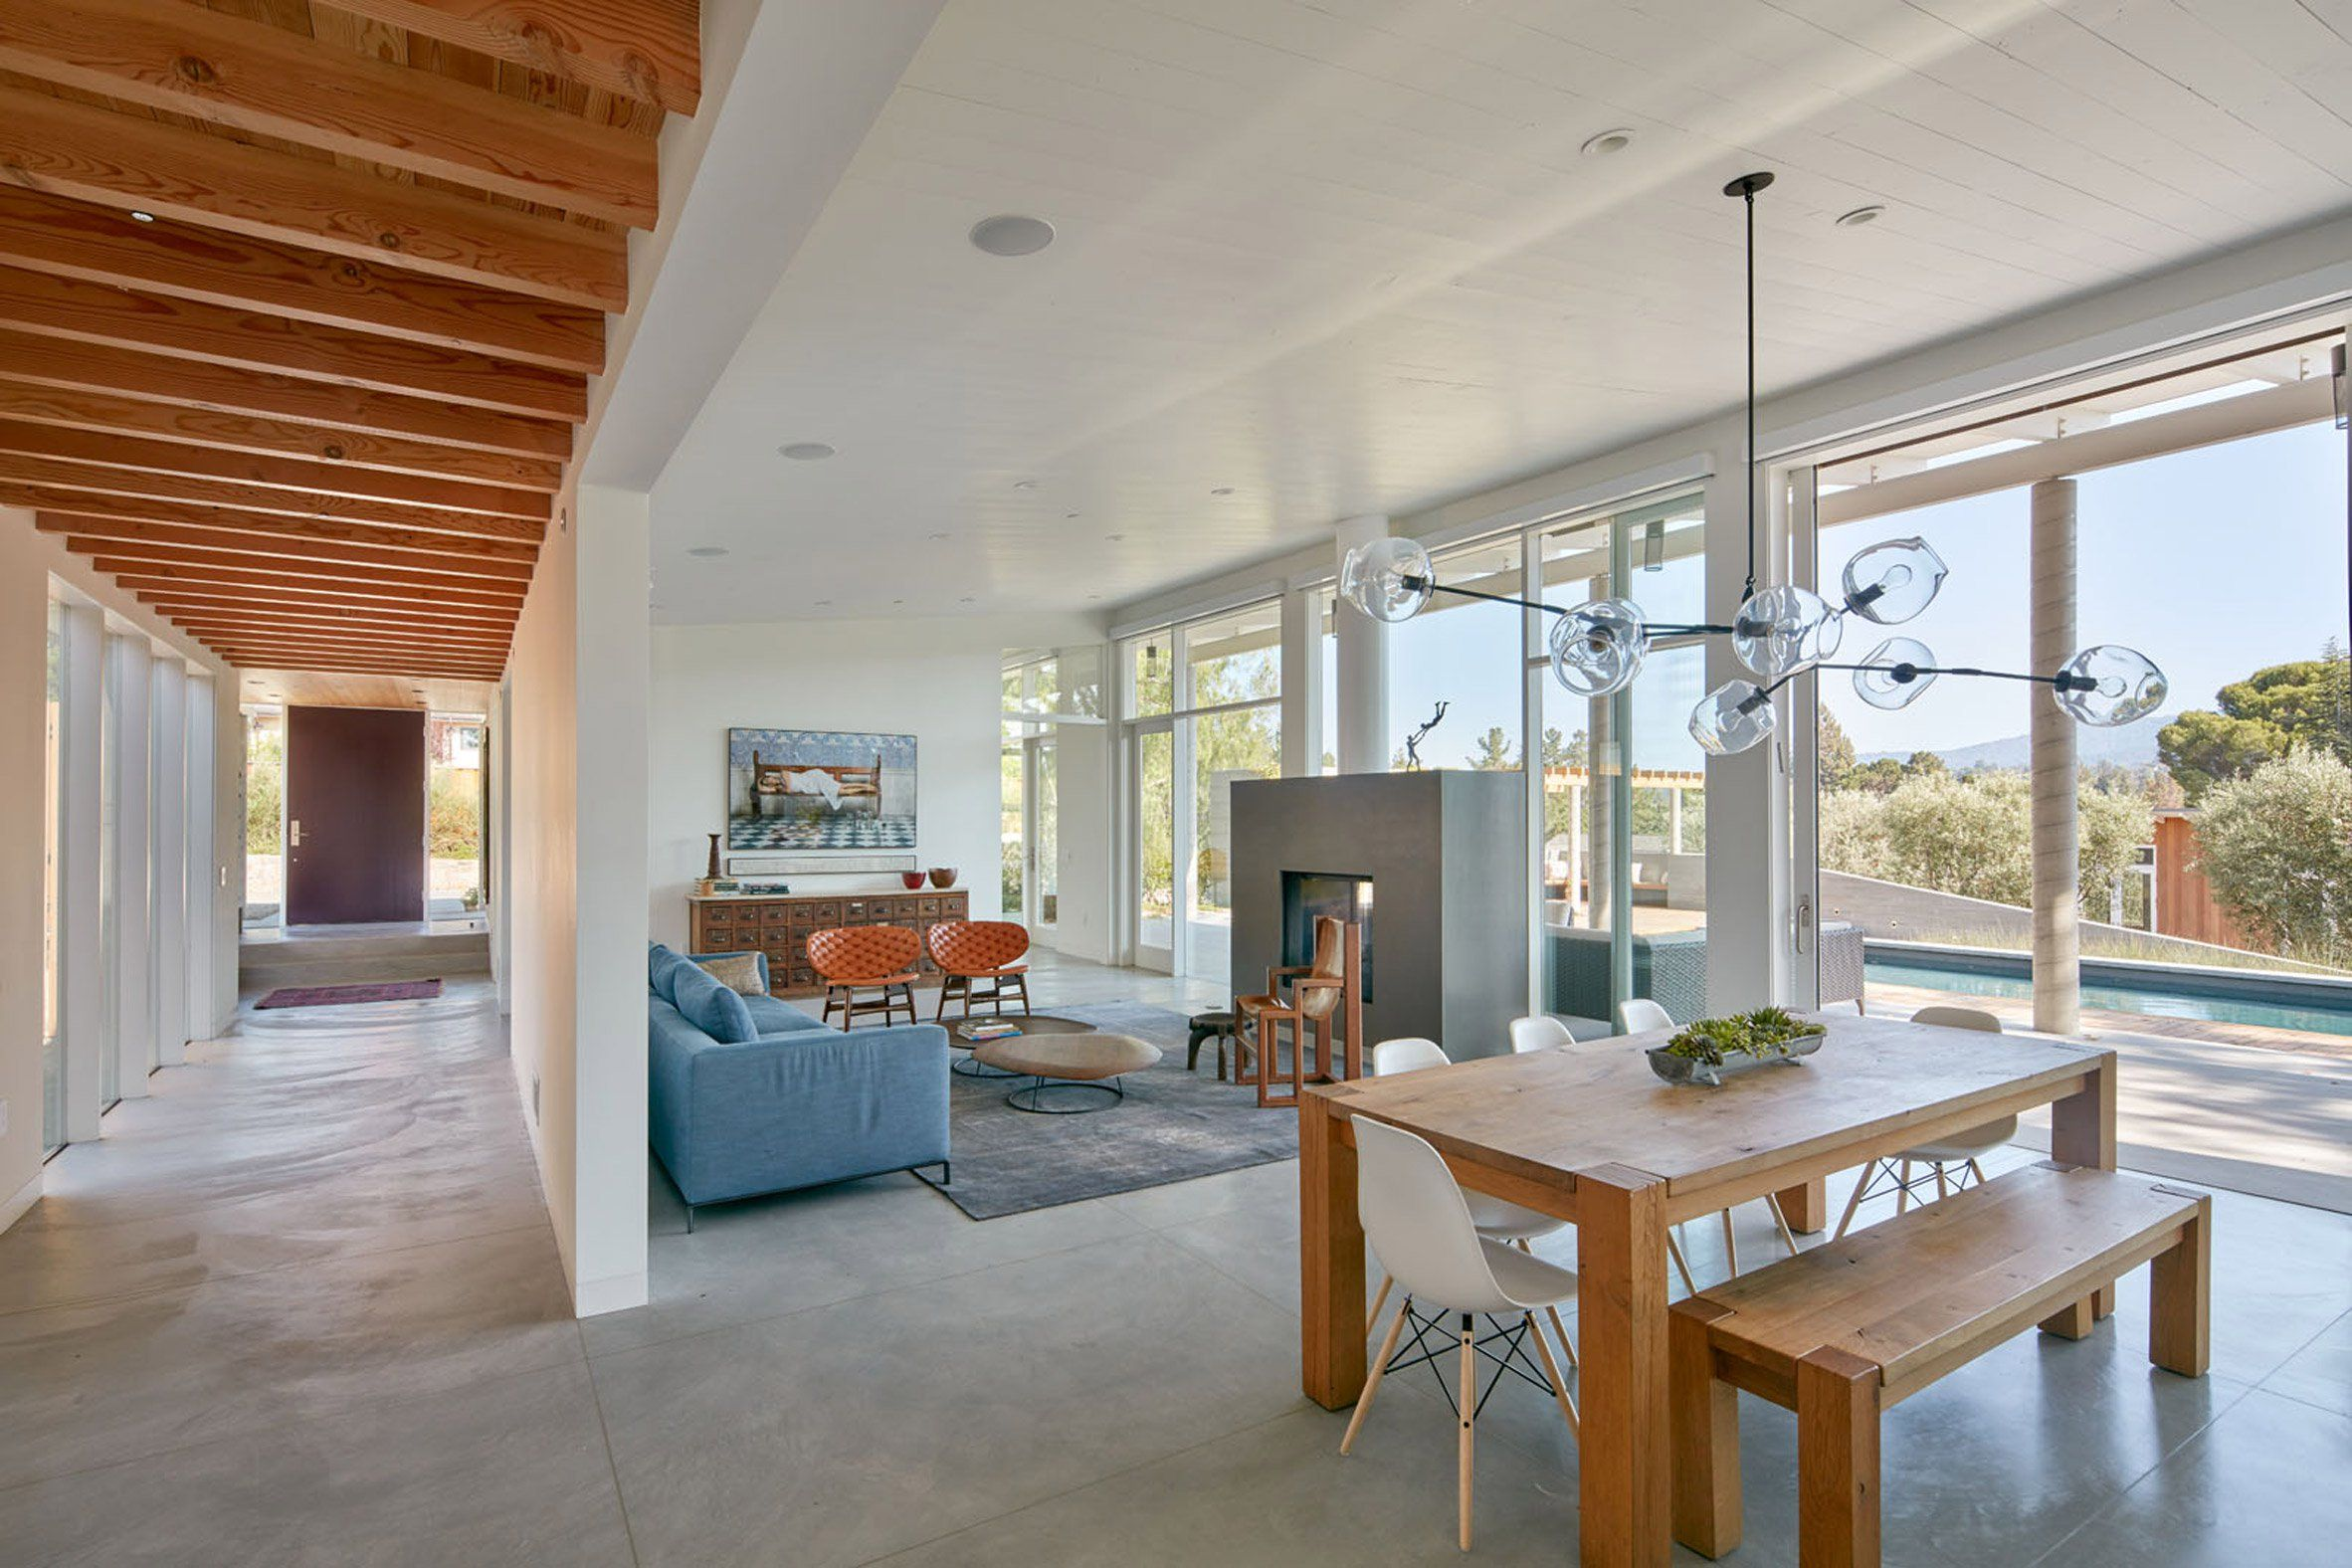 High Quality Providing Ample Outdoor Living Spaces Was A Guiding Factor In The Design Of  This Northern California